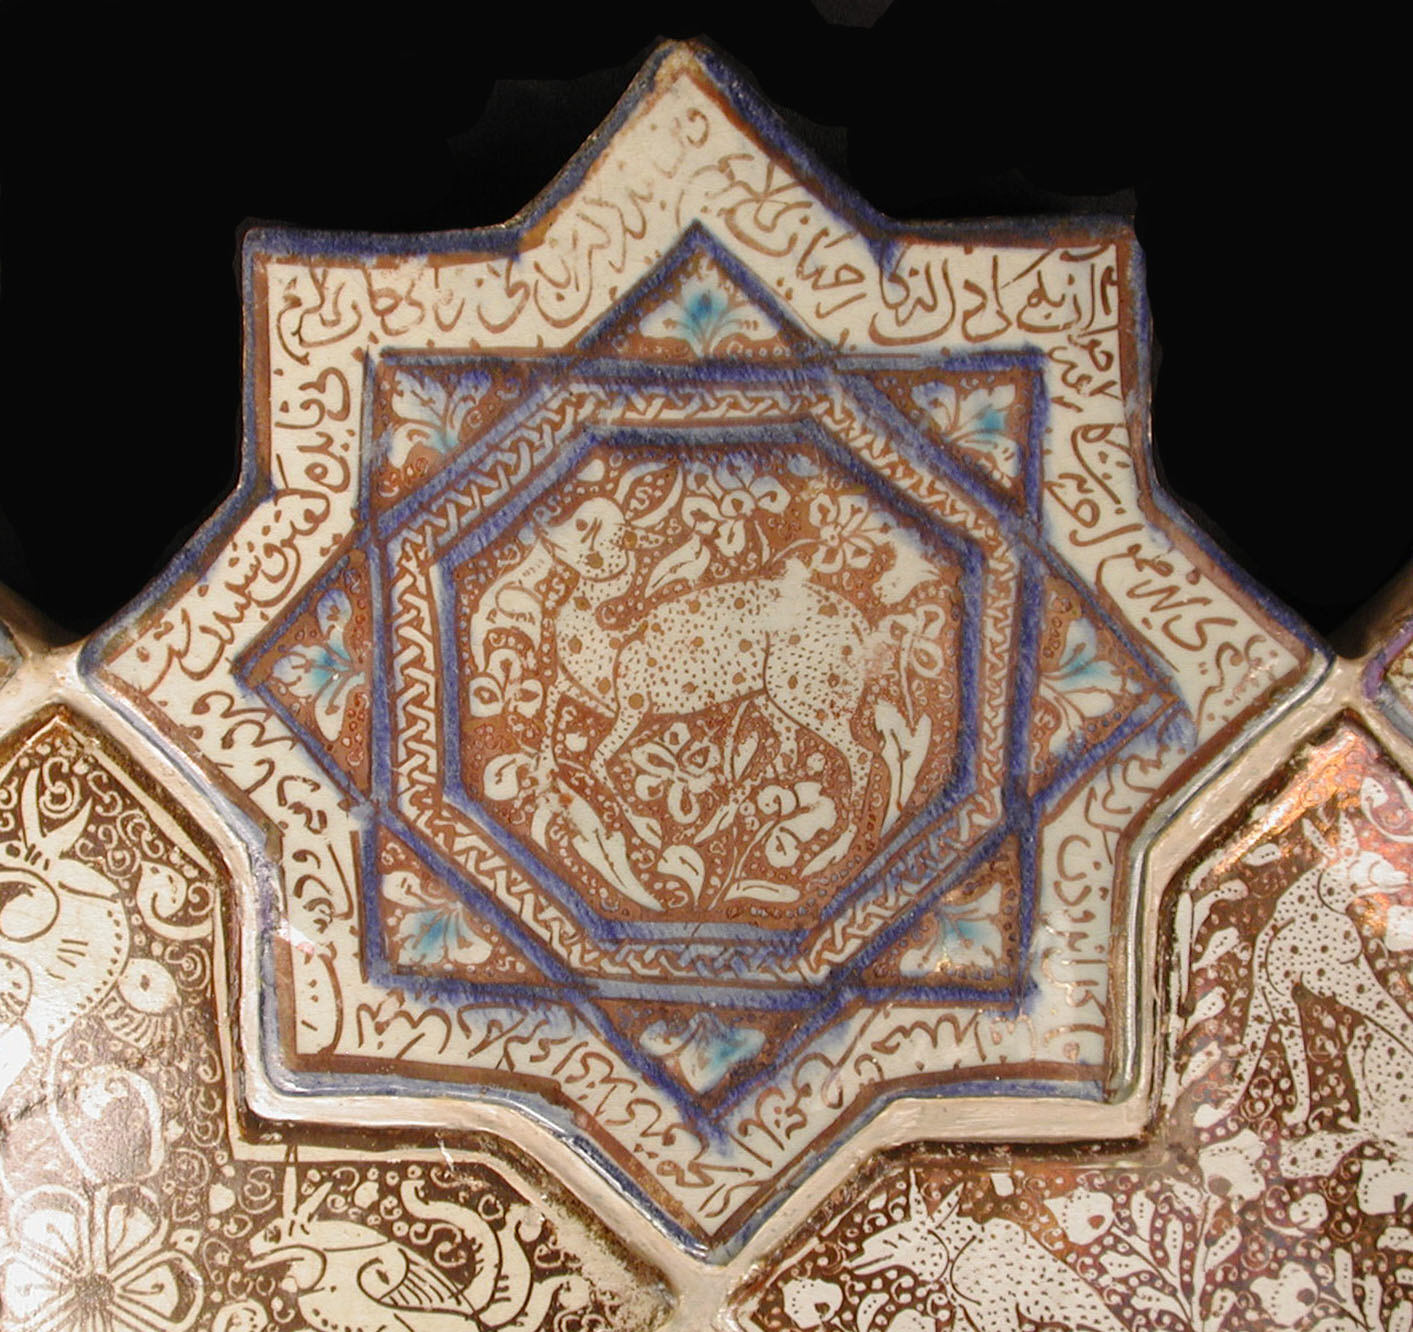 Islamic Art And Geometric Design Activities For Learning Dilznoofus39s Tessellation Book Star Shaped Tile